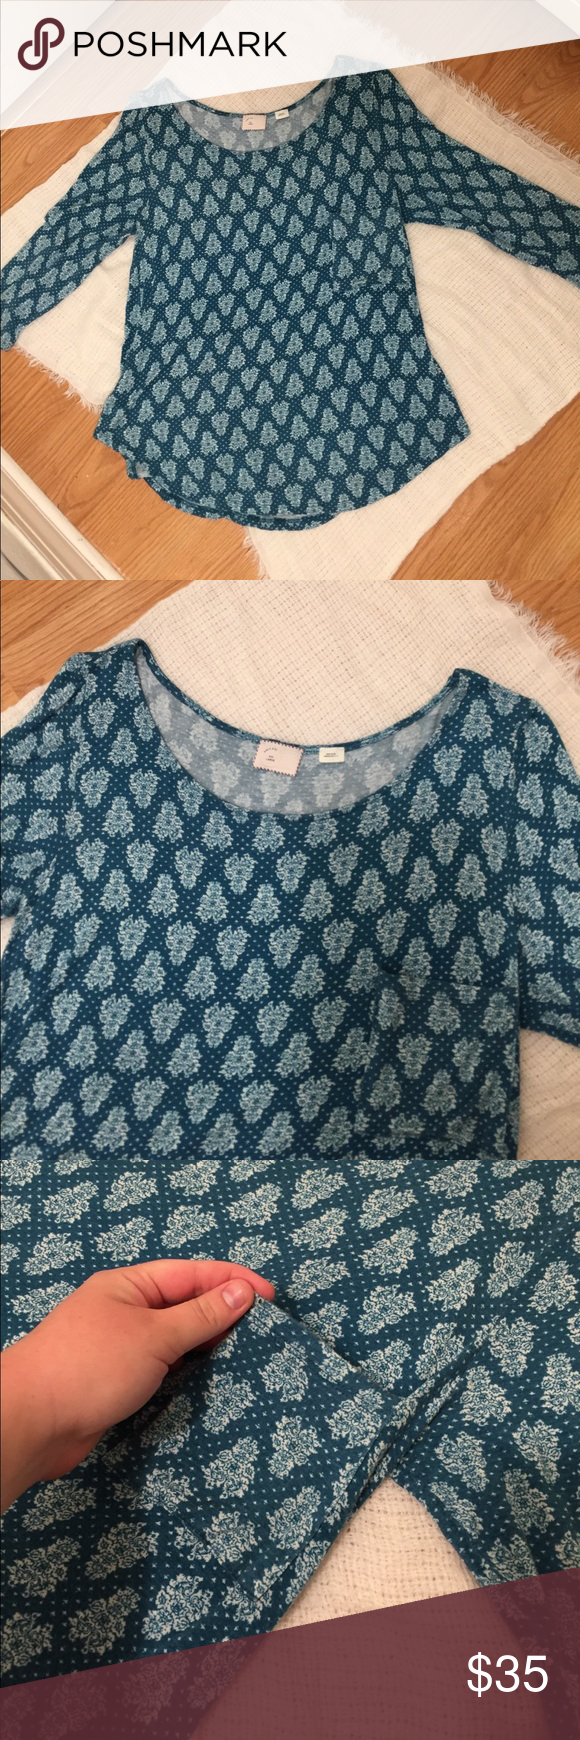 Postmate from Anthropologie Floral Patterned Top This gorgeous top was gently worn and has no holes, stains, or pilling. It is extremely soft and functional. It is pocket and has 3/4 length sleeves. Purchased from Anthropologie. Please comment any questions or make an offer! 😊 Anthropologie Tops Tees - Long Sleeve